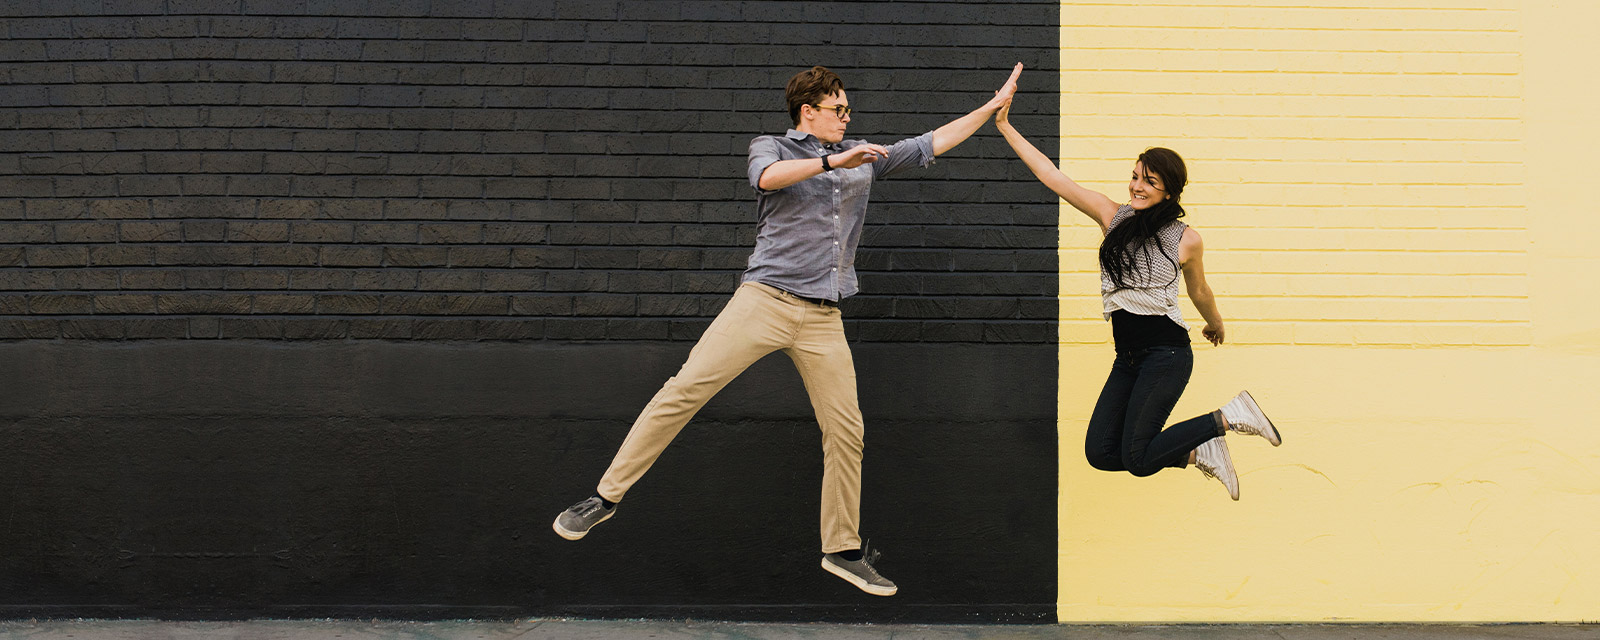 Two people jumping and high-fiving.